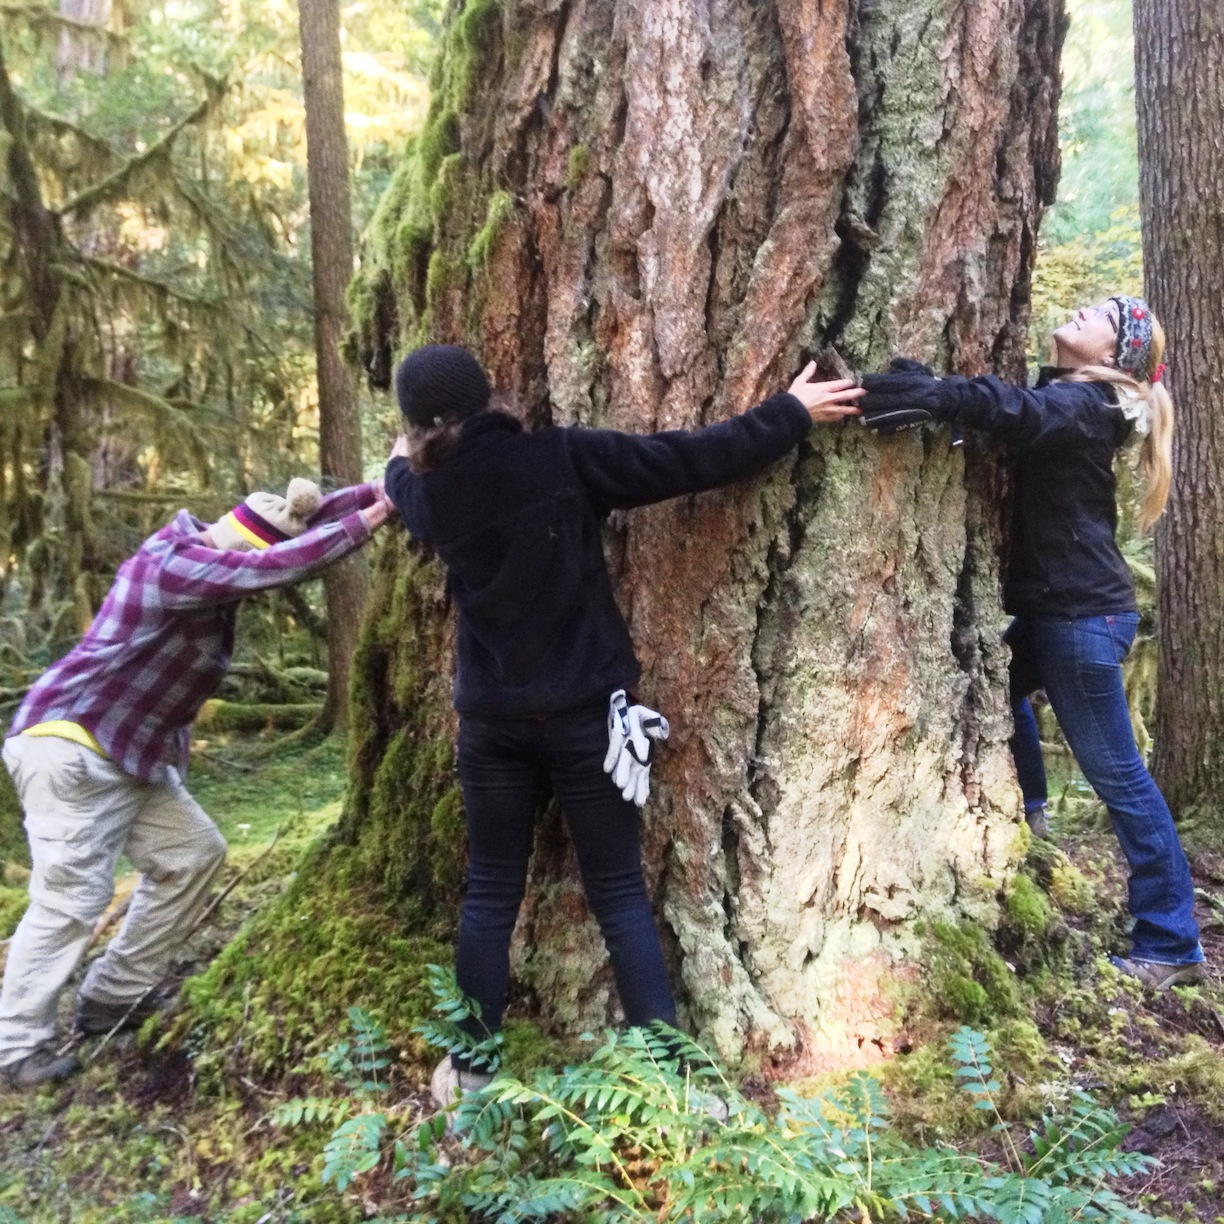 Alex Biddle, Mallory Woodman, and Meg Townsend embracing an old-growth tree